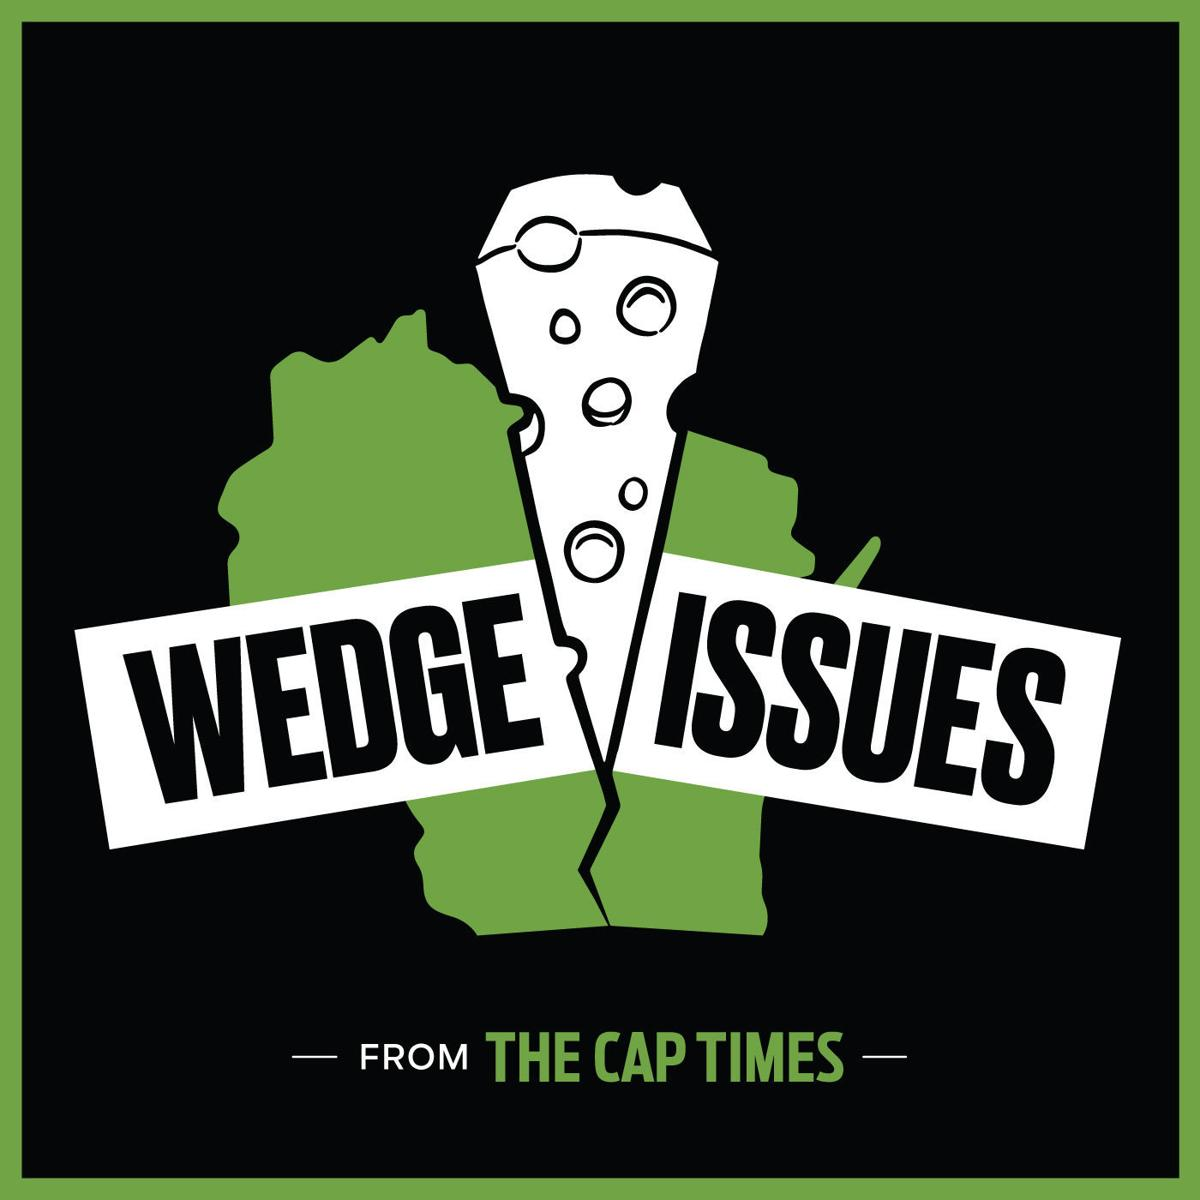 wedge issues logo